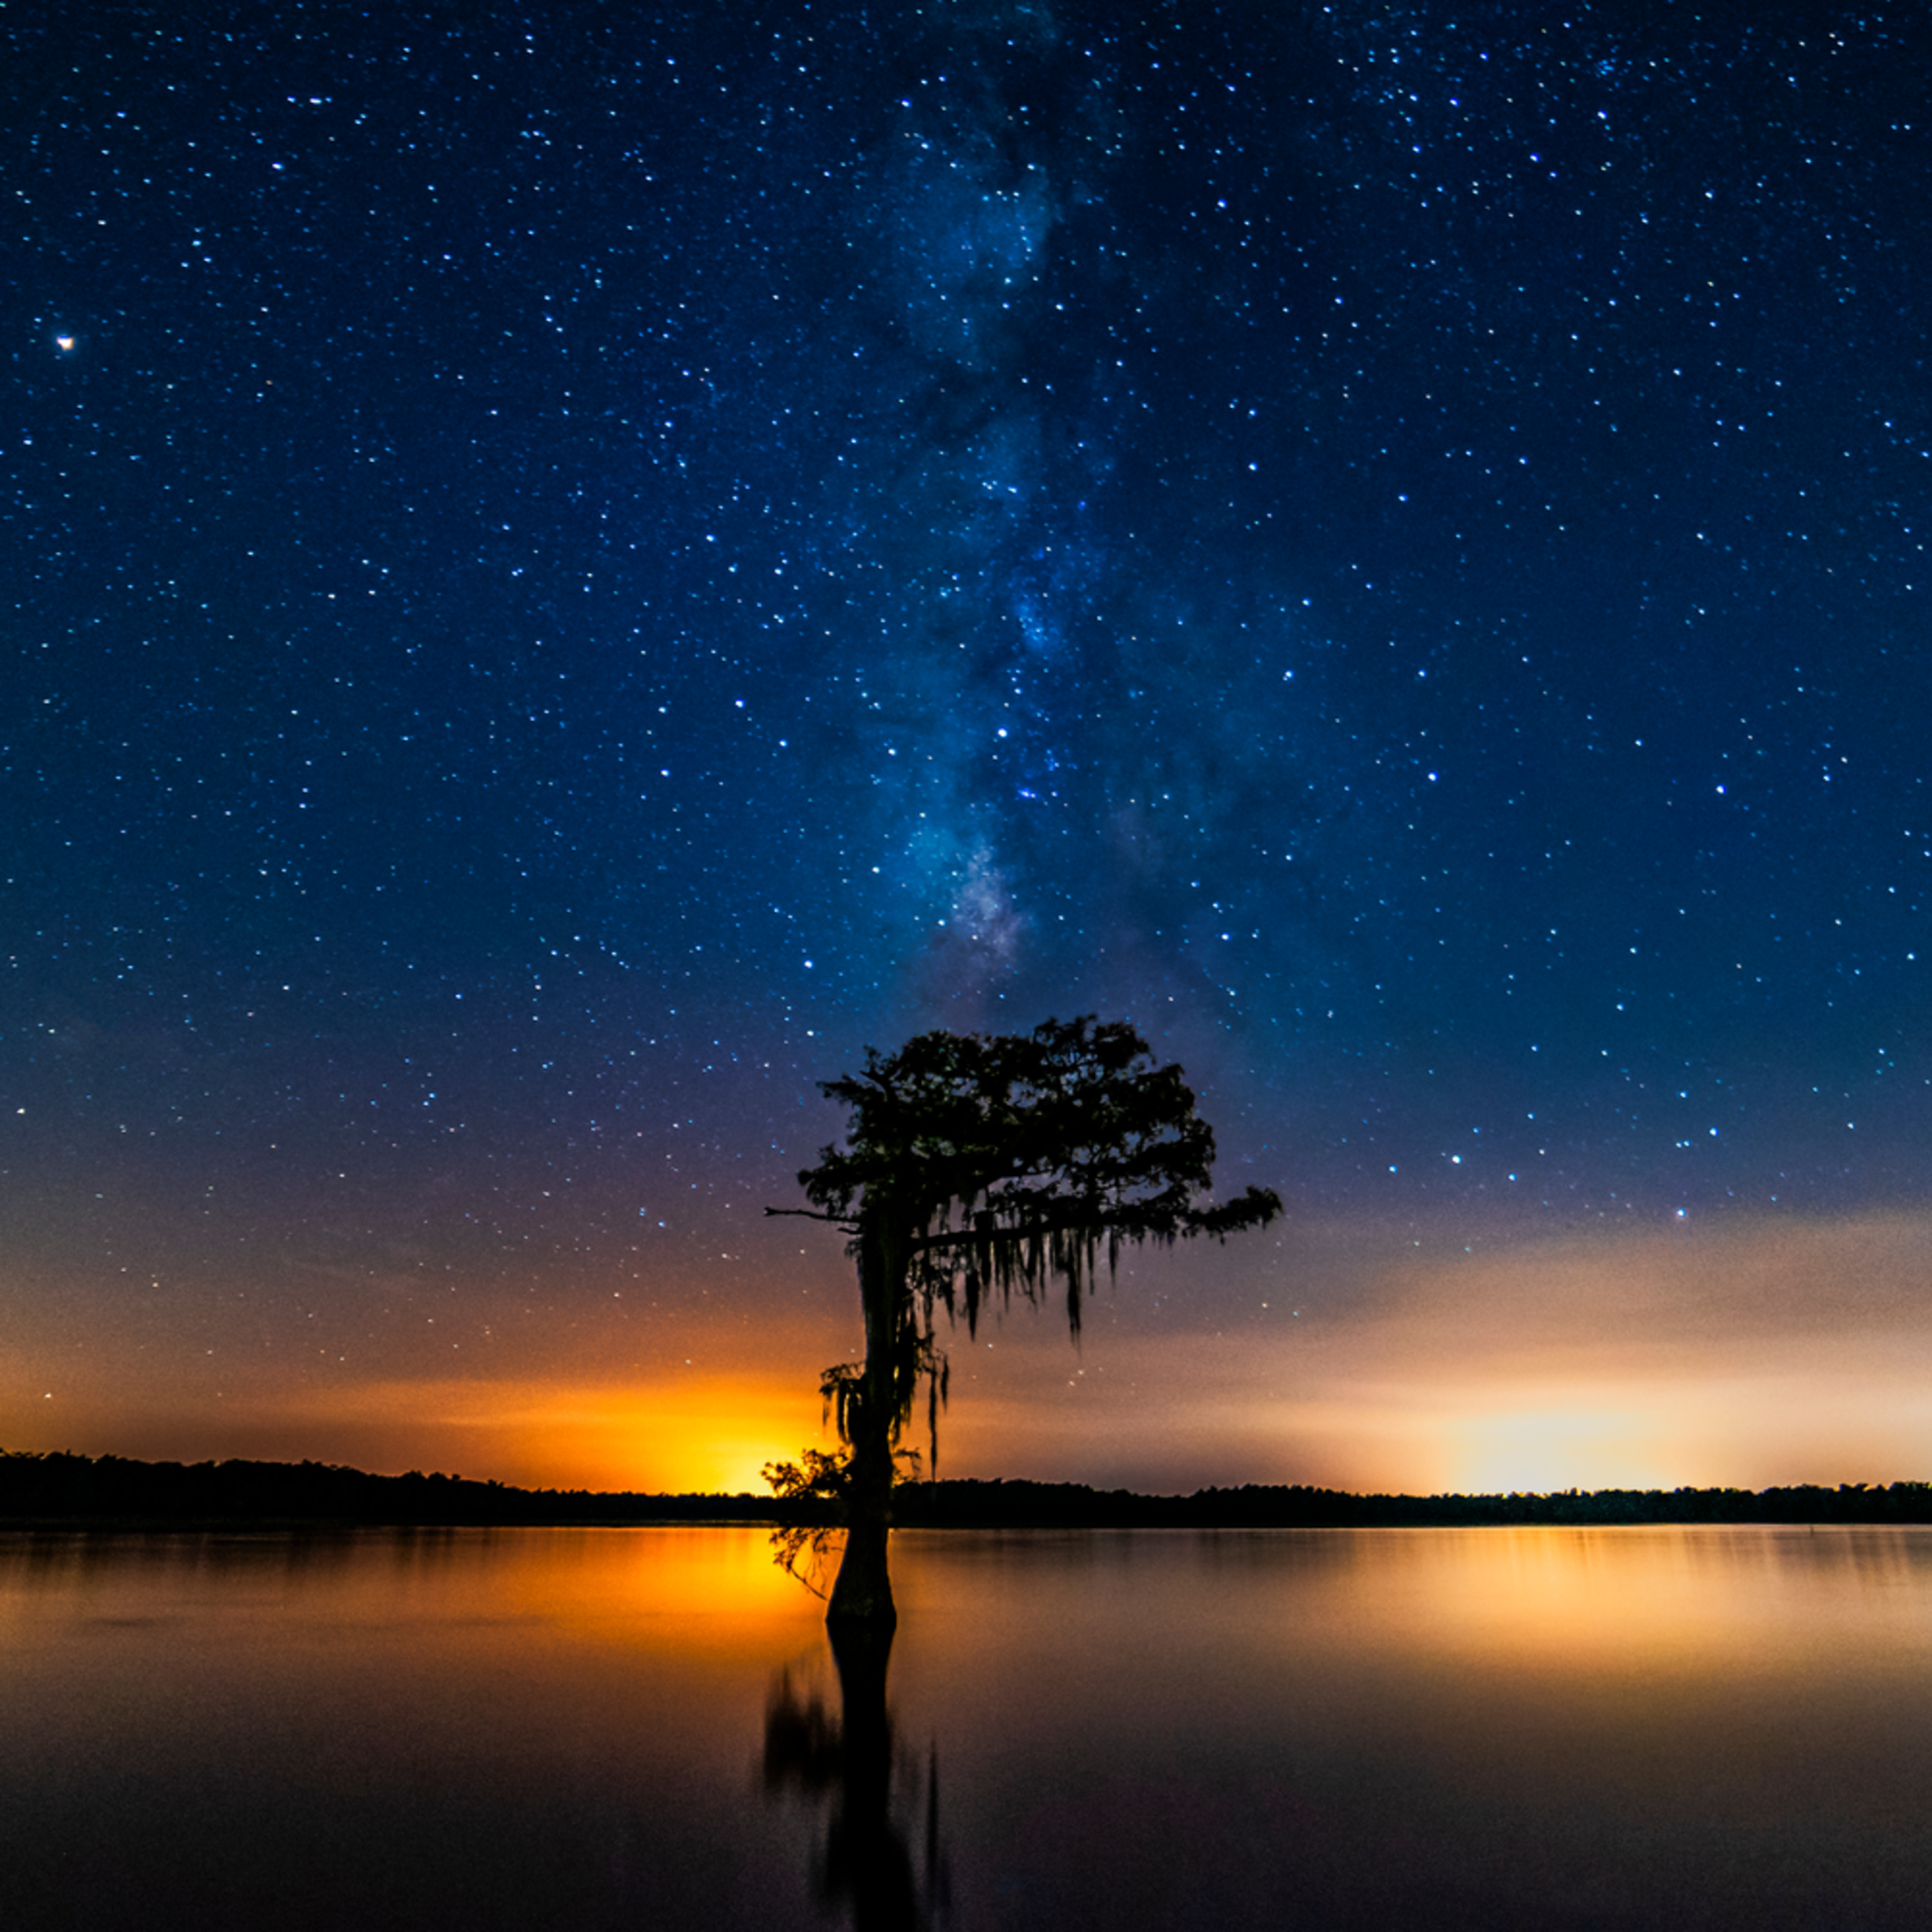 Andy crawford photography atchafalaya basin 003 kbxovt